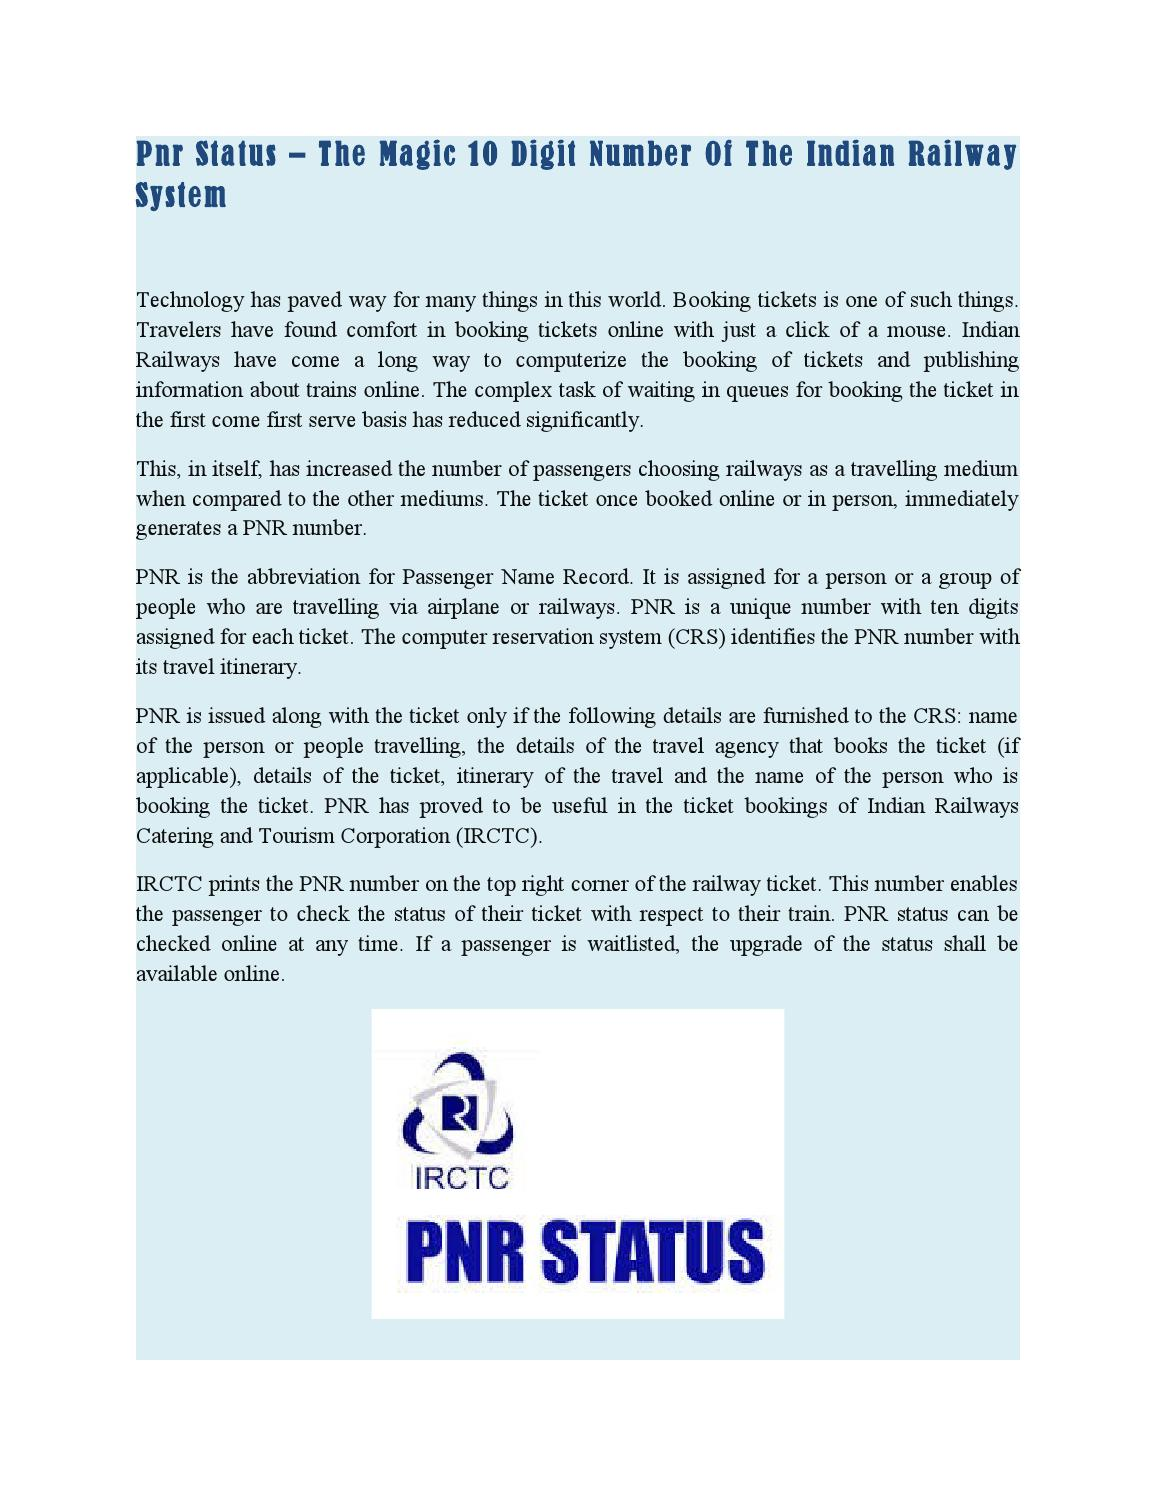 Pnr status – the magic 10 digit number of the indian railway system